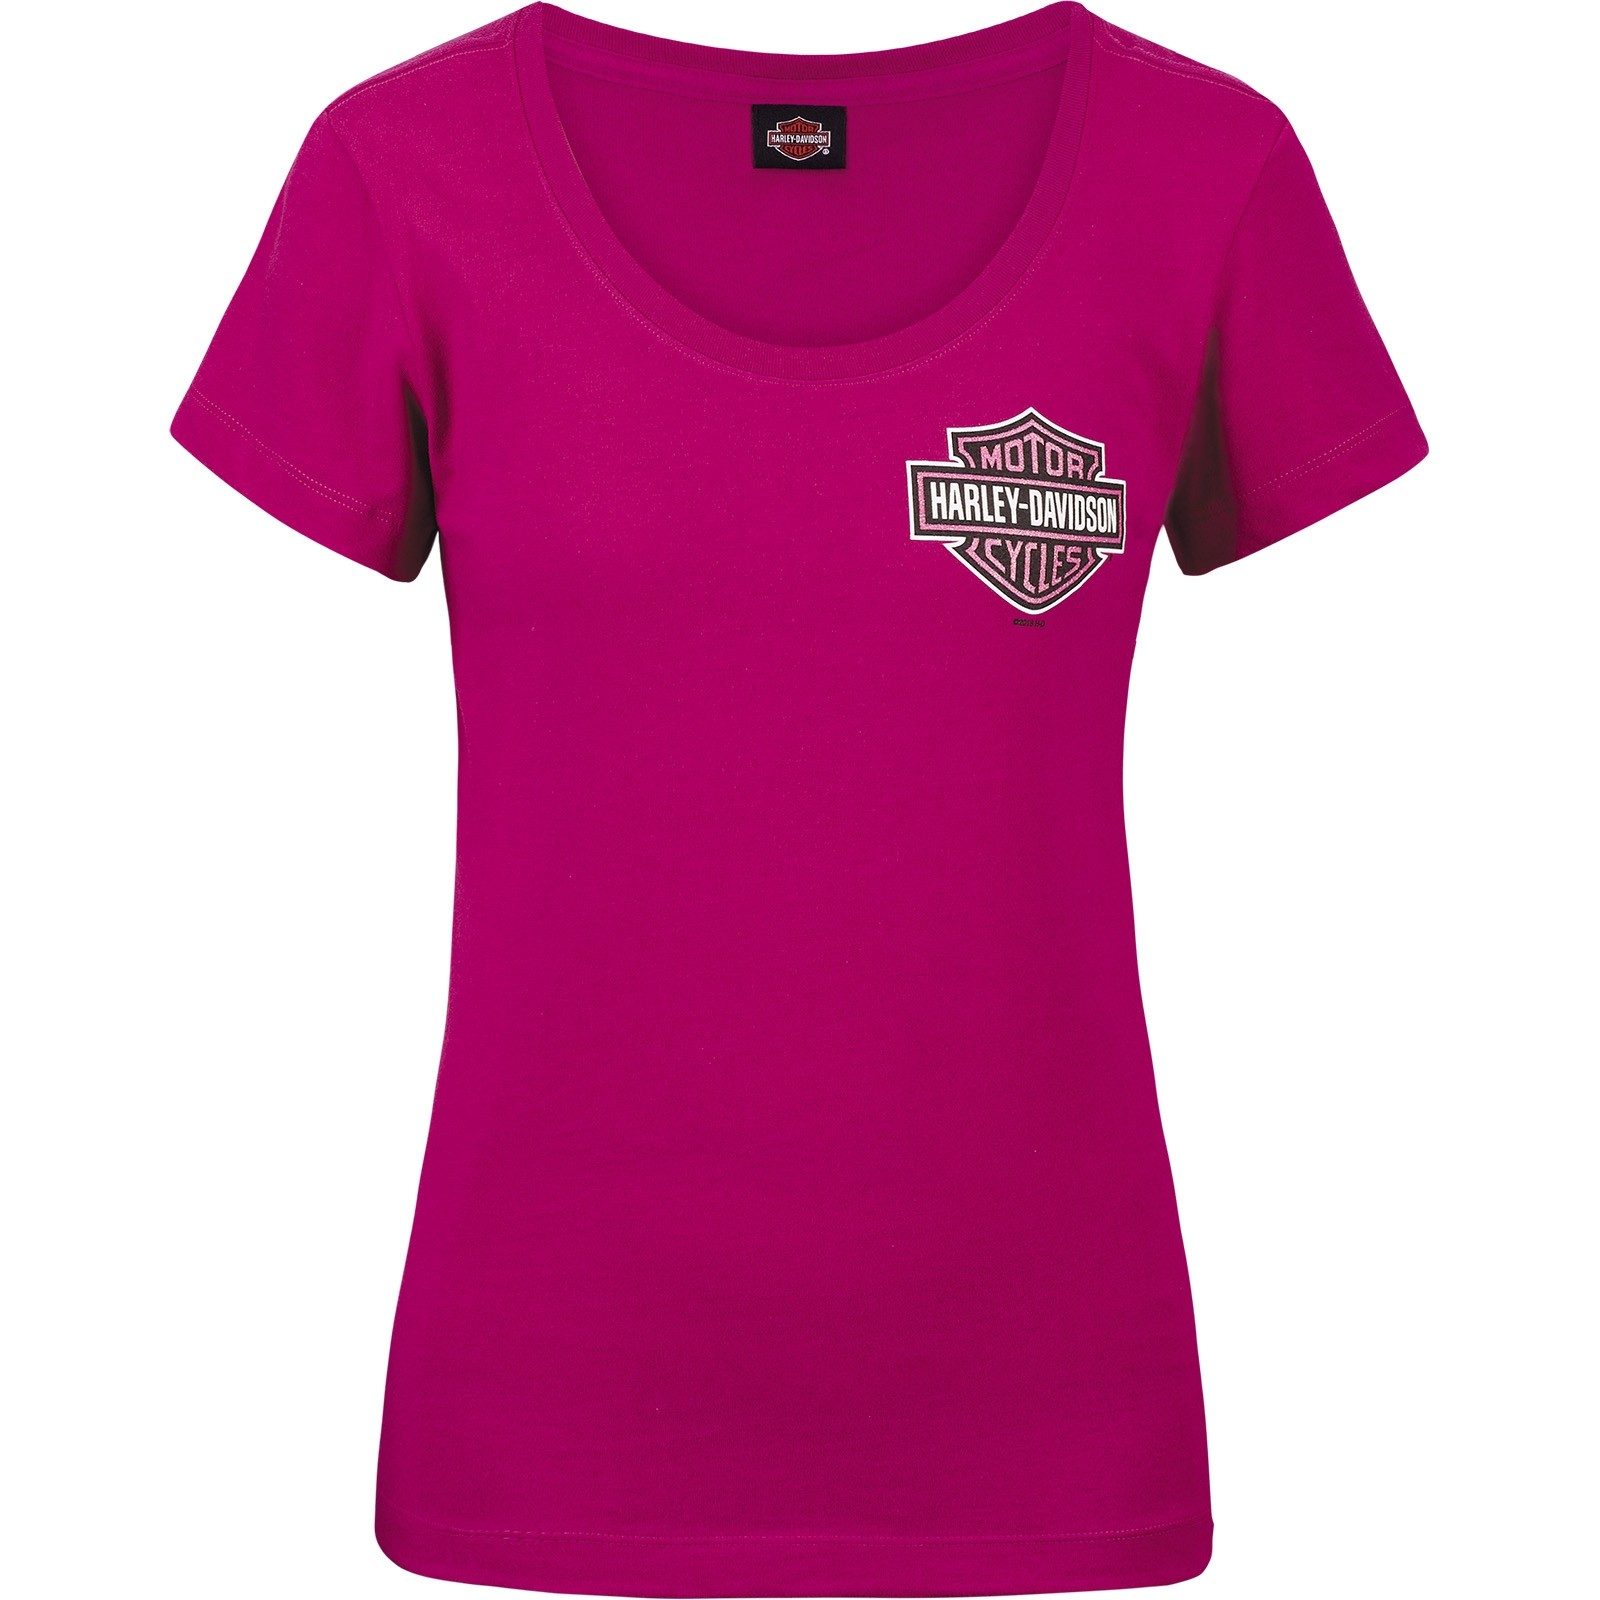 Harley-Davidson Military - Women's Scoop Neck T-shirt - Aviano Air Base | Berry Logo